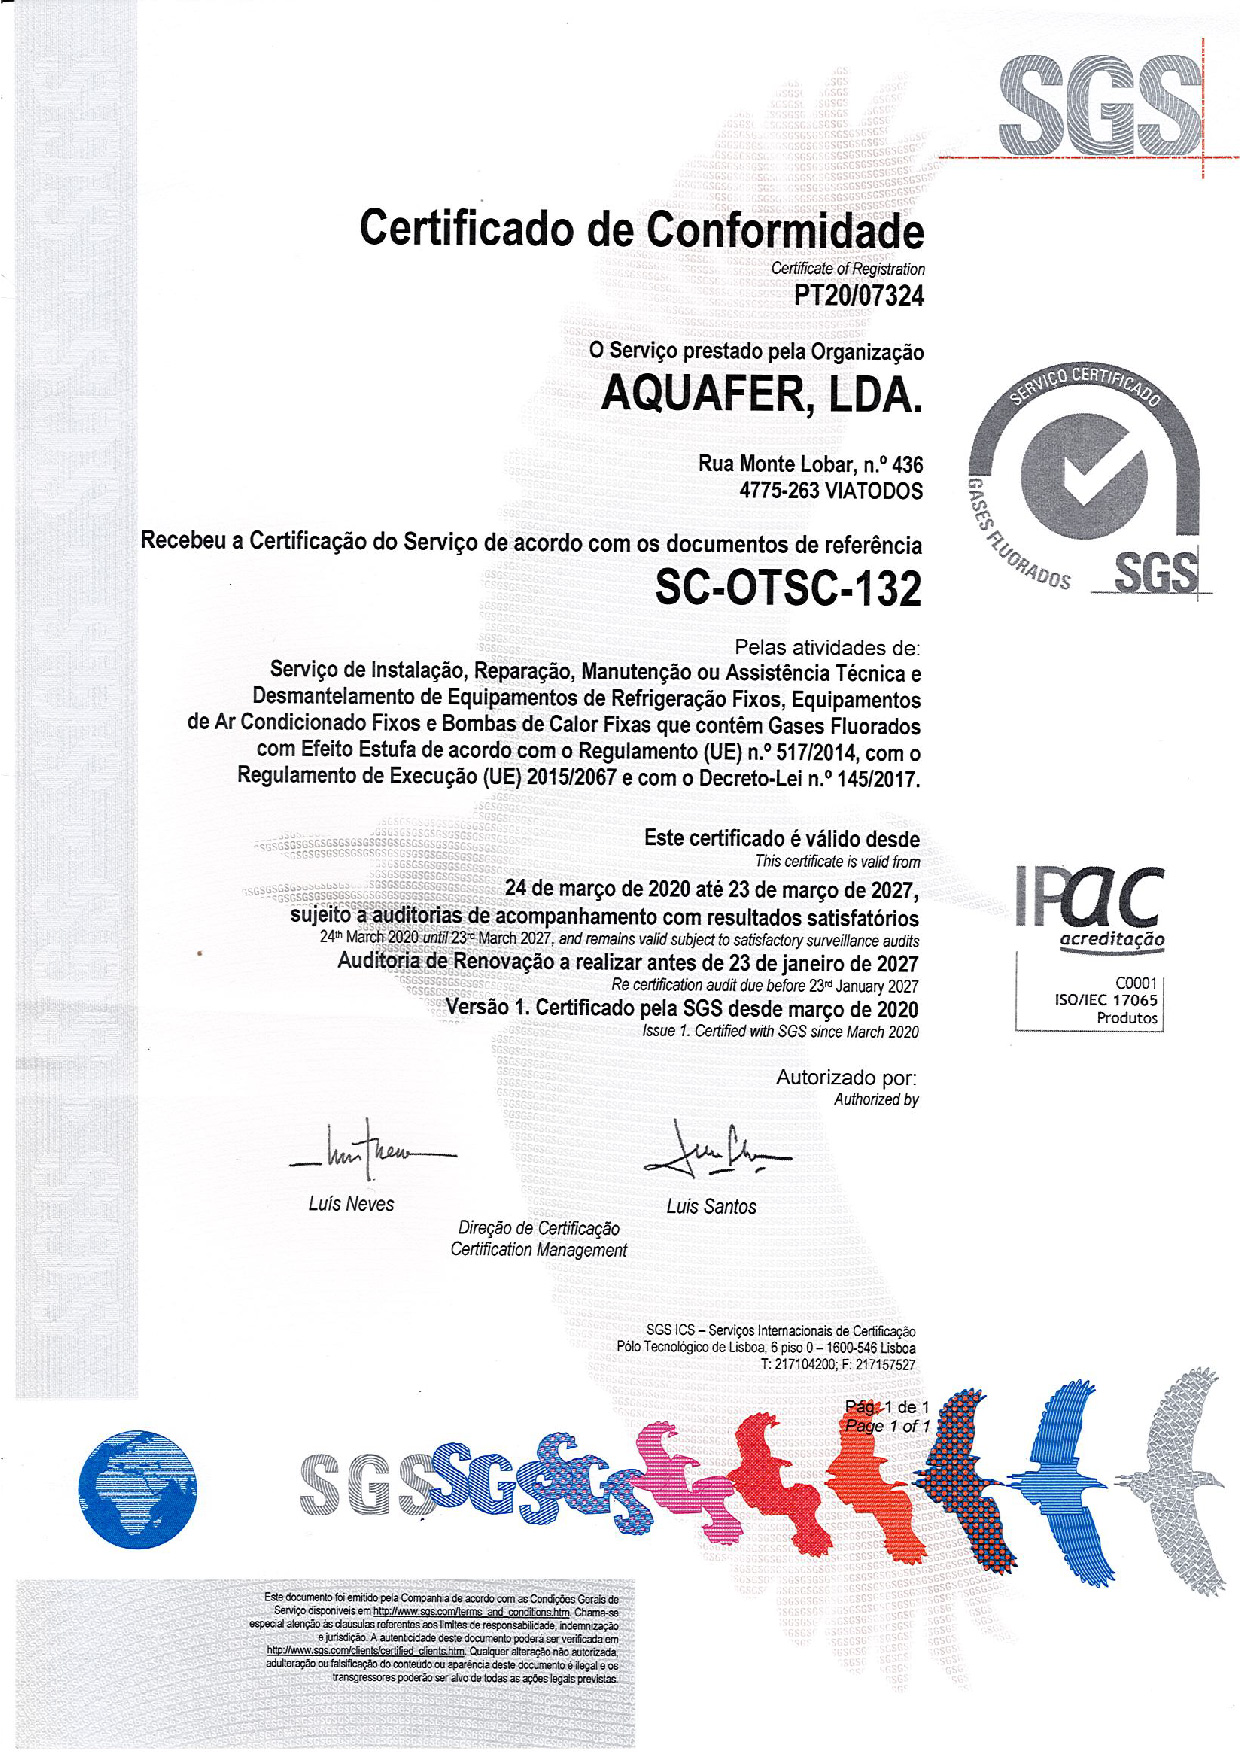 Aquafer obtains Certificate in the field fluorinated gases